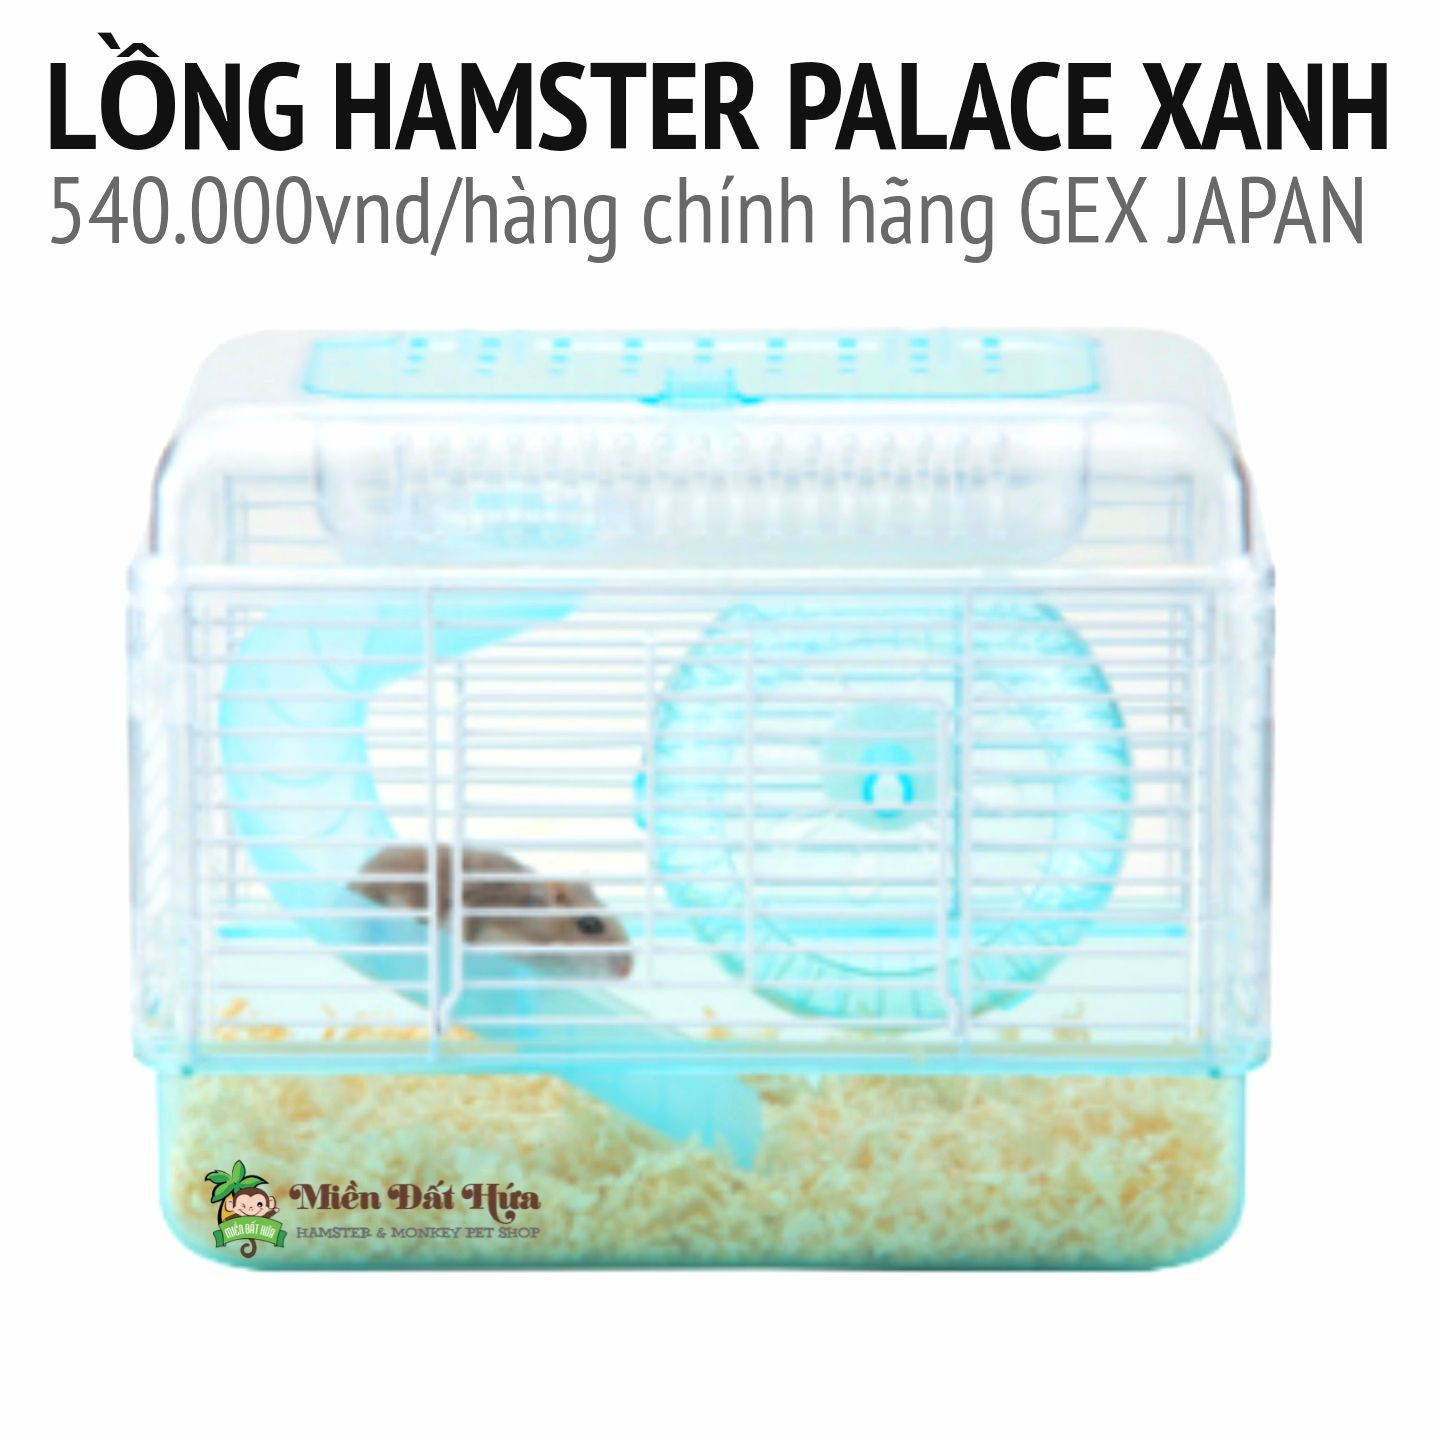 Lồng hamster trong suốt palace xanh GEX